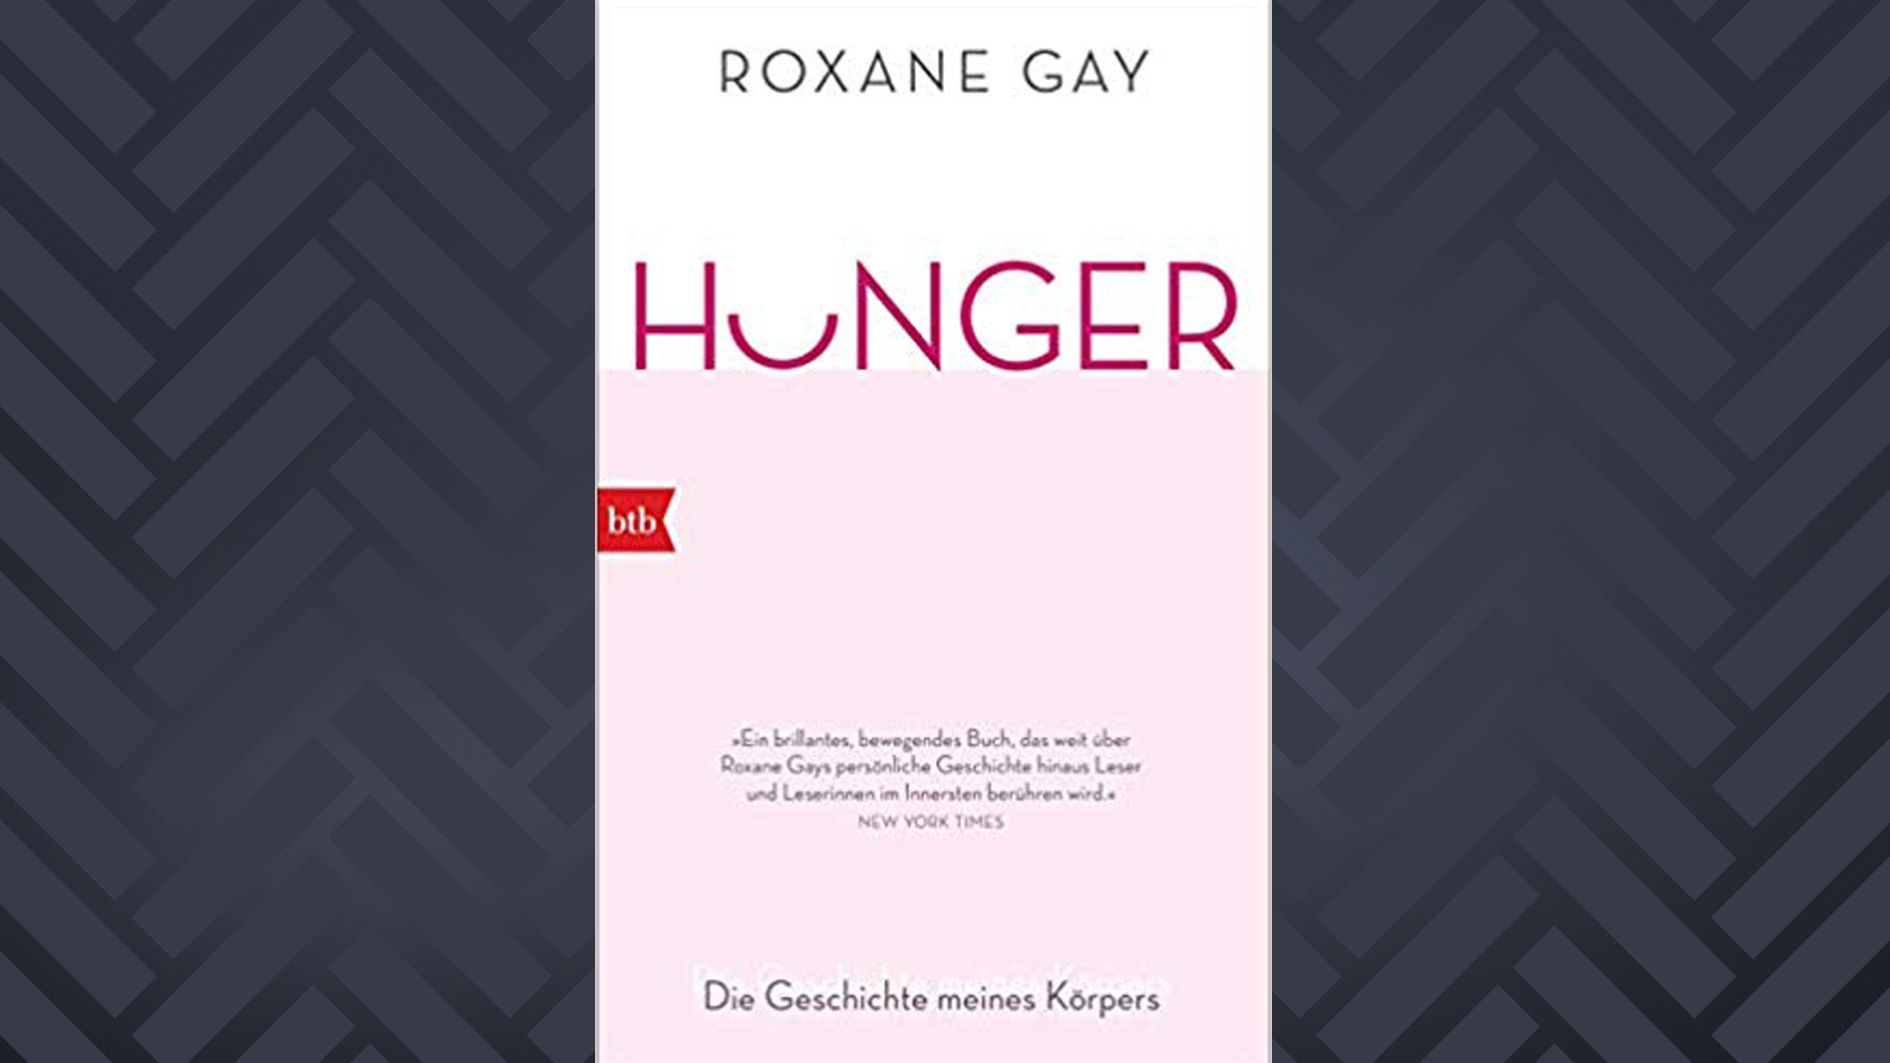 Cover: Roxane Gay